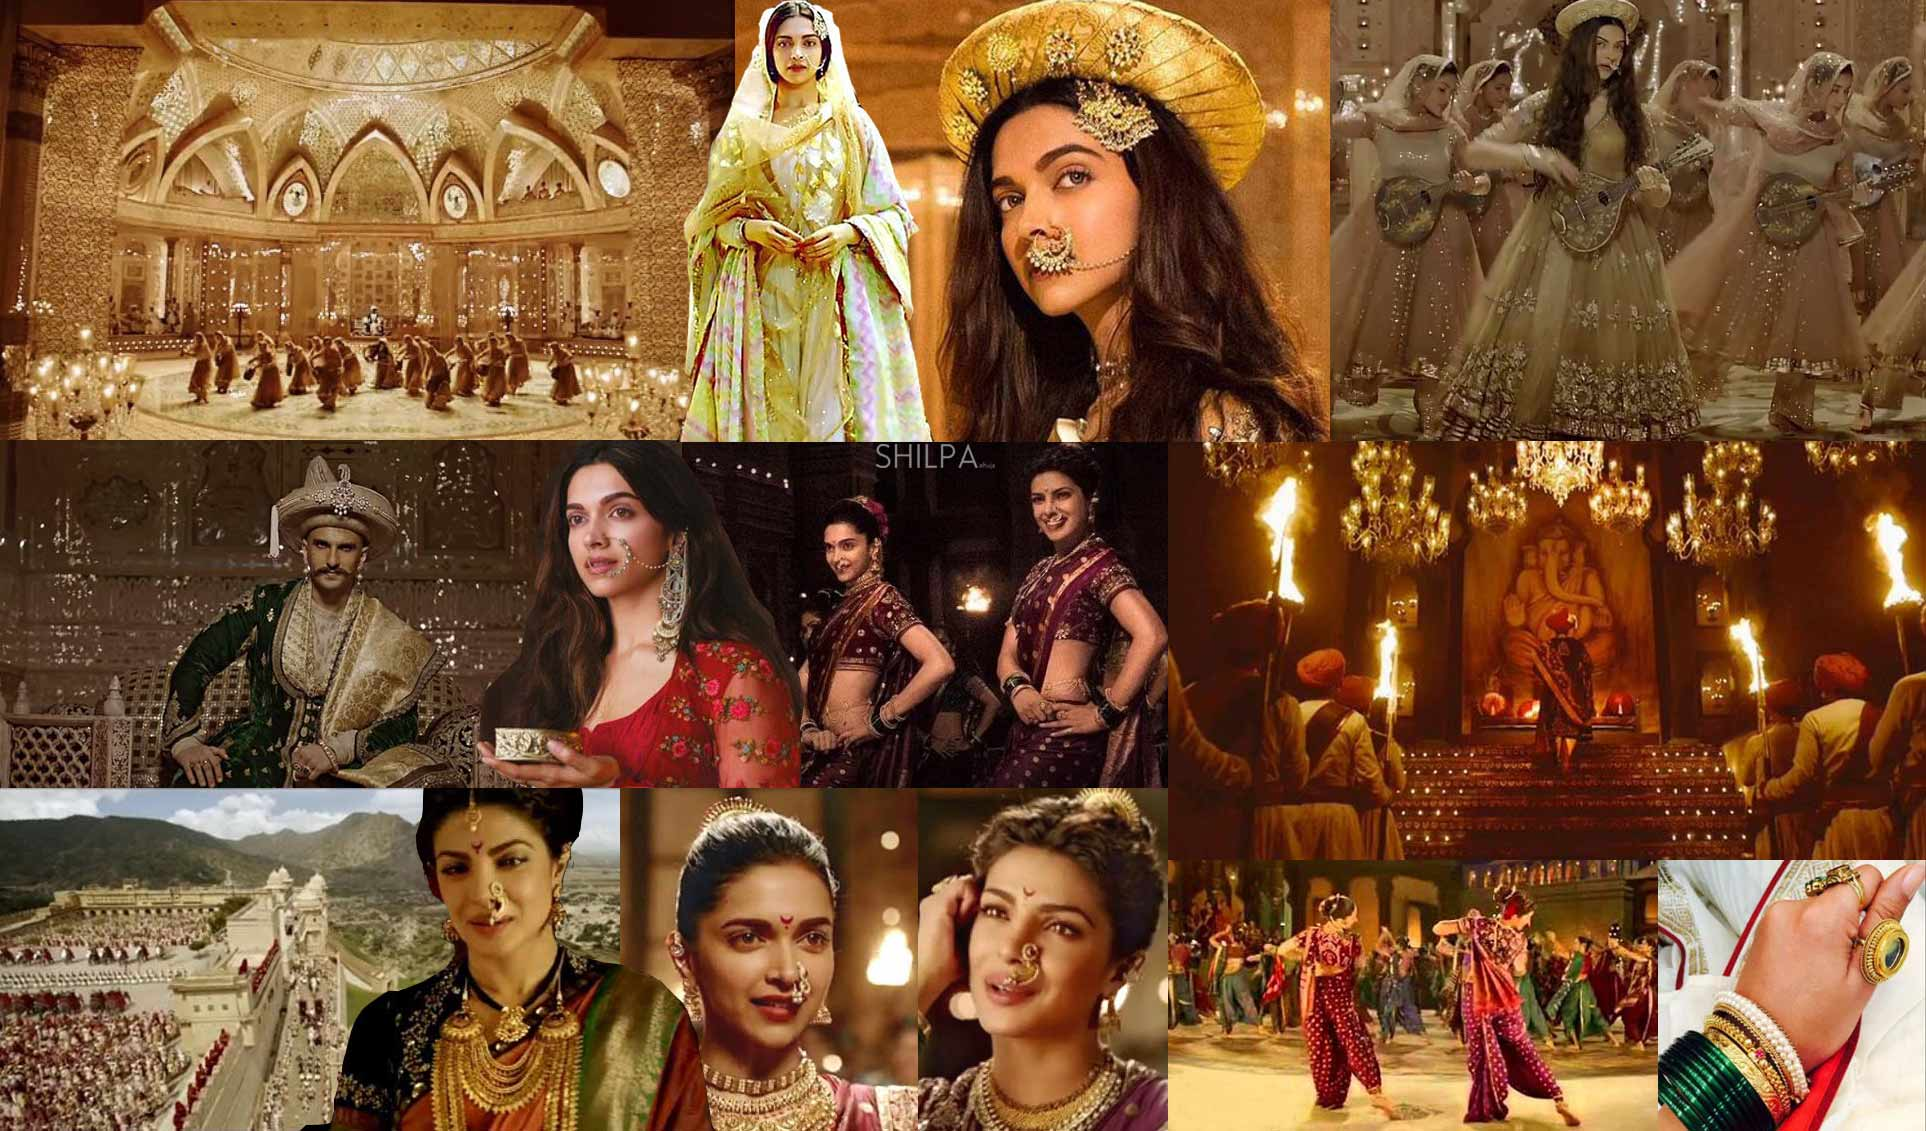 bajirao-mastani-bollywood-movie-set-up-dance-deepika-padukone-dress-costumes